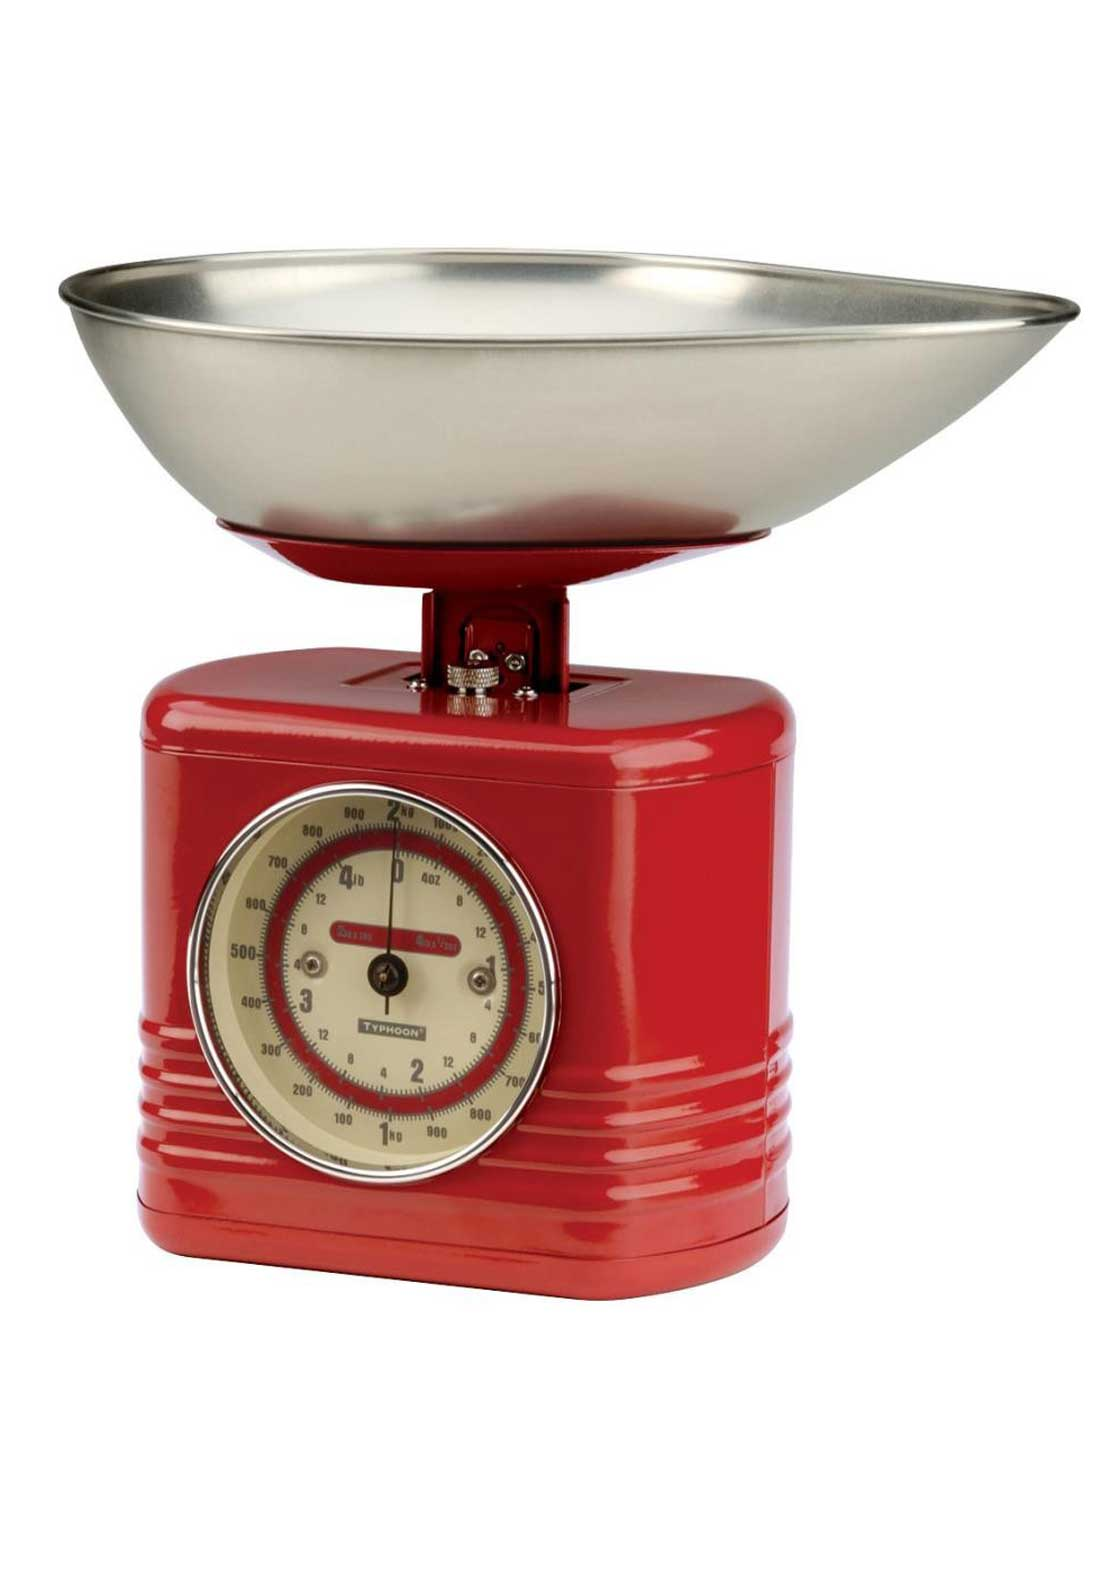 Typhoon 2kg Vintage Kitchen Scales, Red